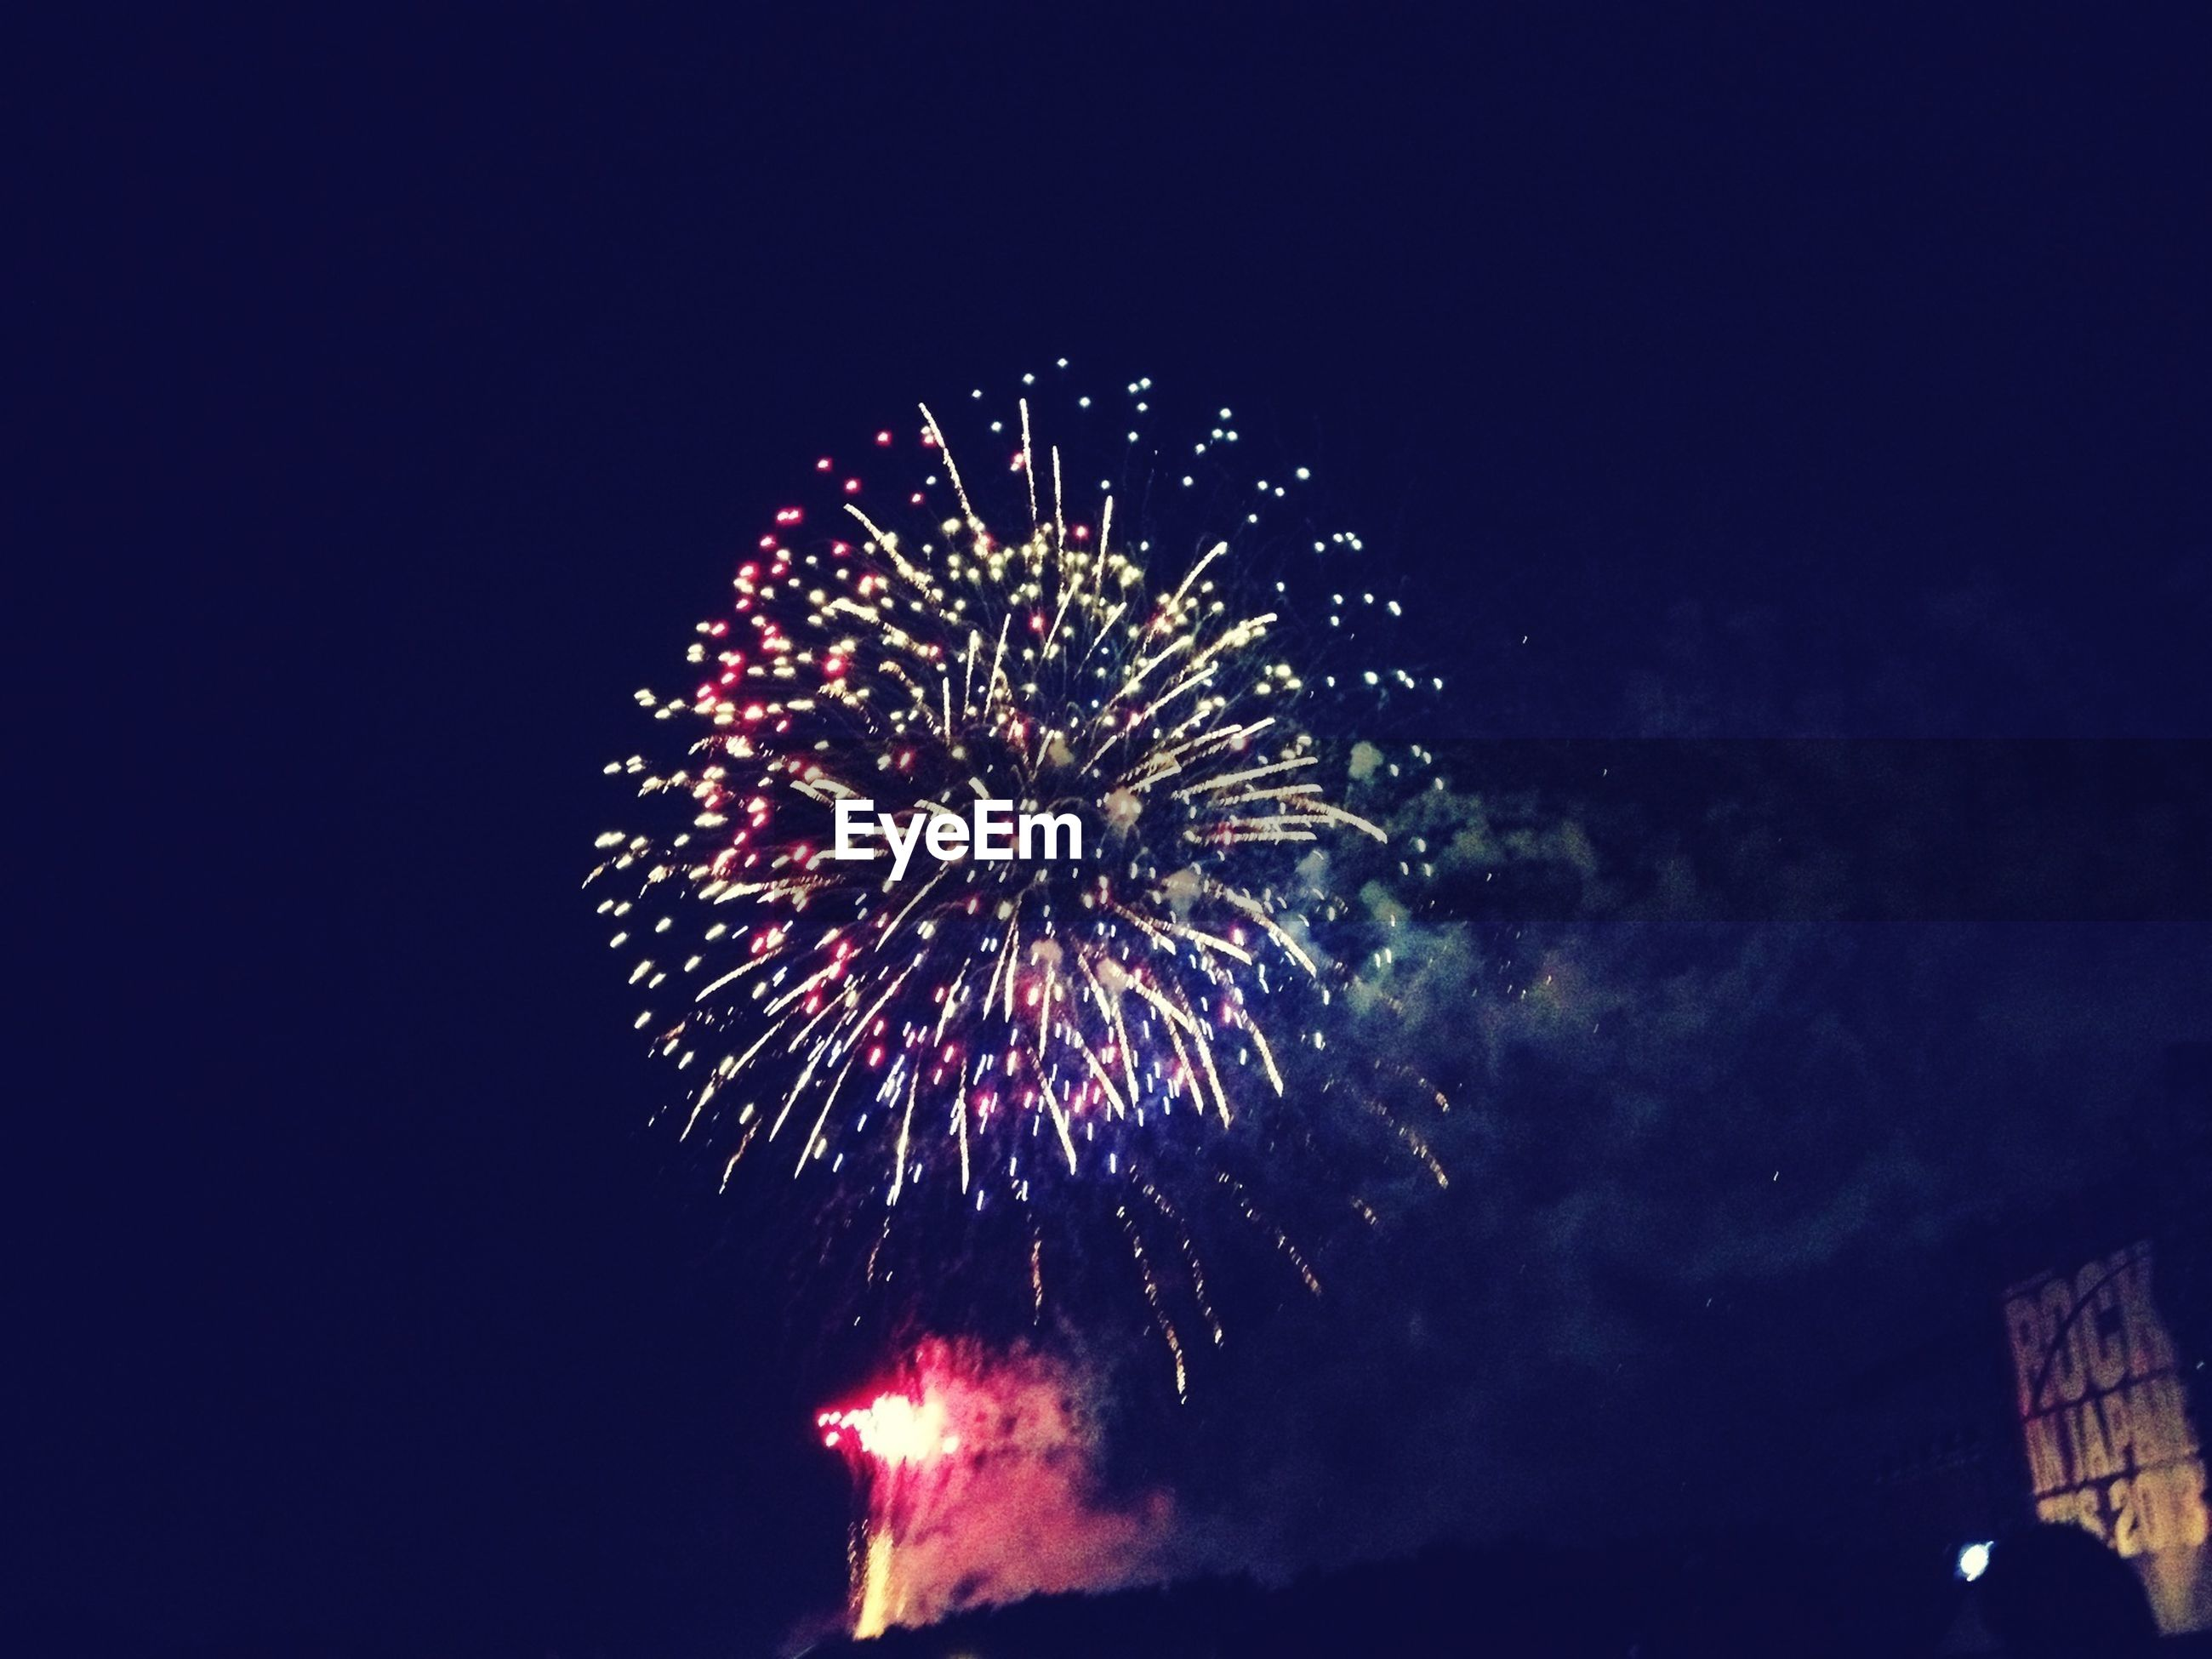 firework display, night, illuminated, exploding, celebration, firework - man made object, long exposure, arts culture and entertainment, low angle view, motion, sparks, event, glowing, firework, sky, entertainment, blurred motion, multi colored, celebration event, fire - natural phenomenon